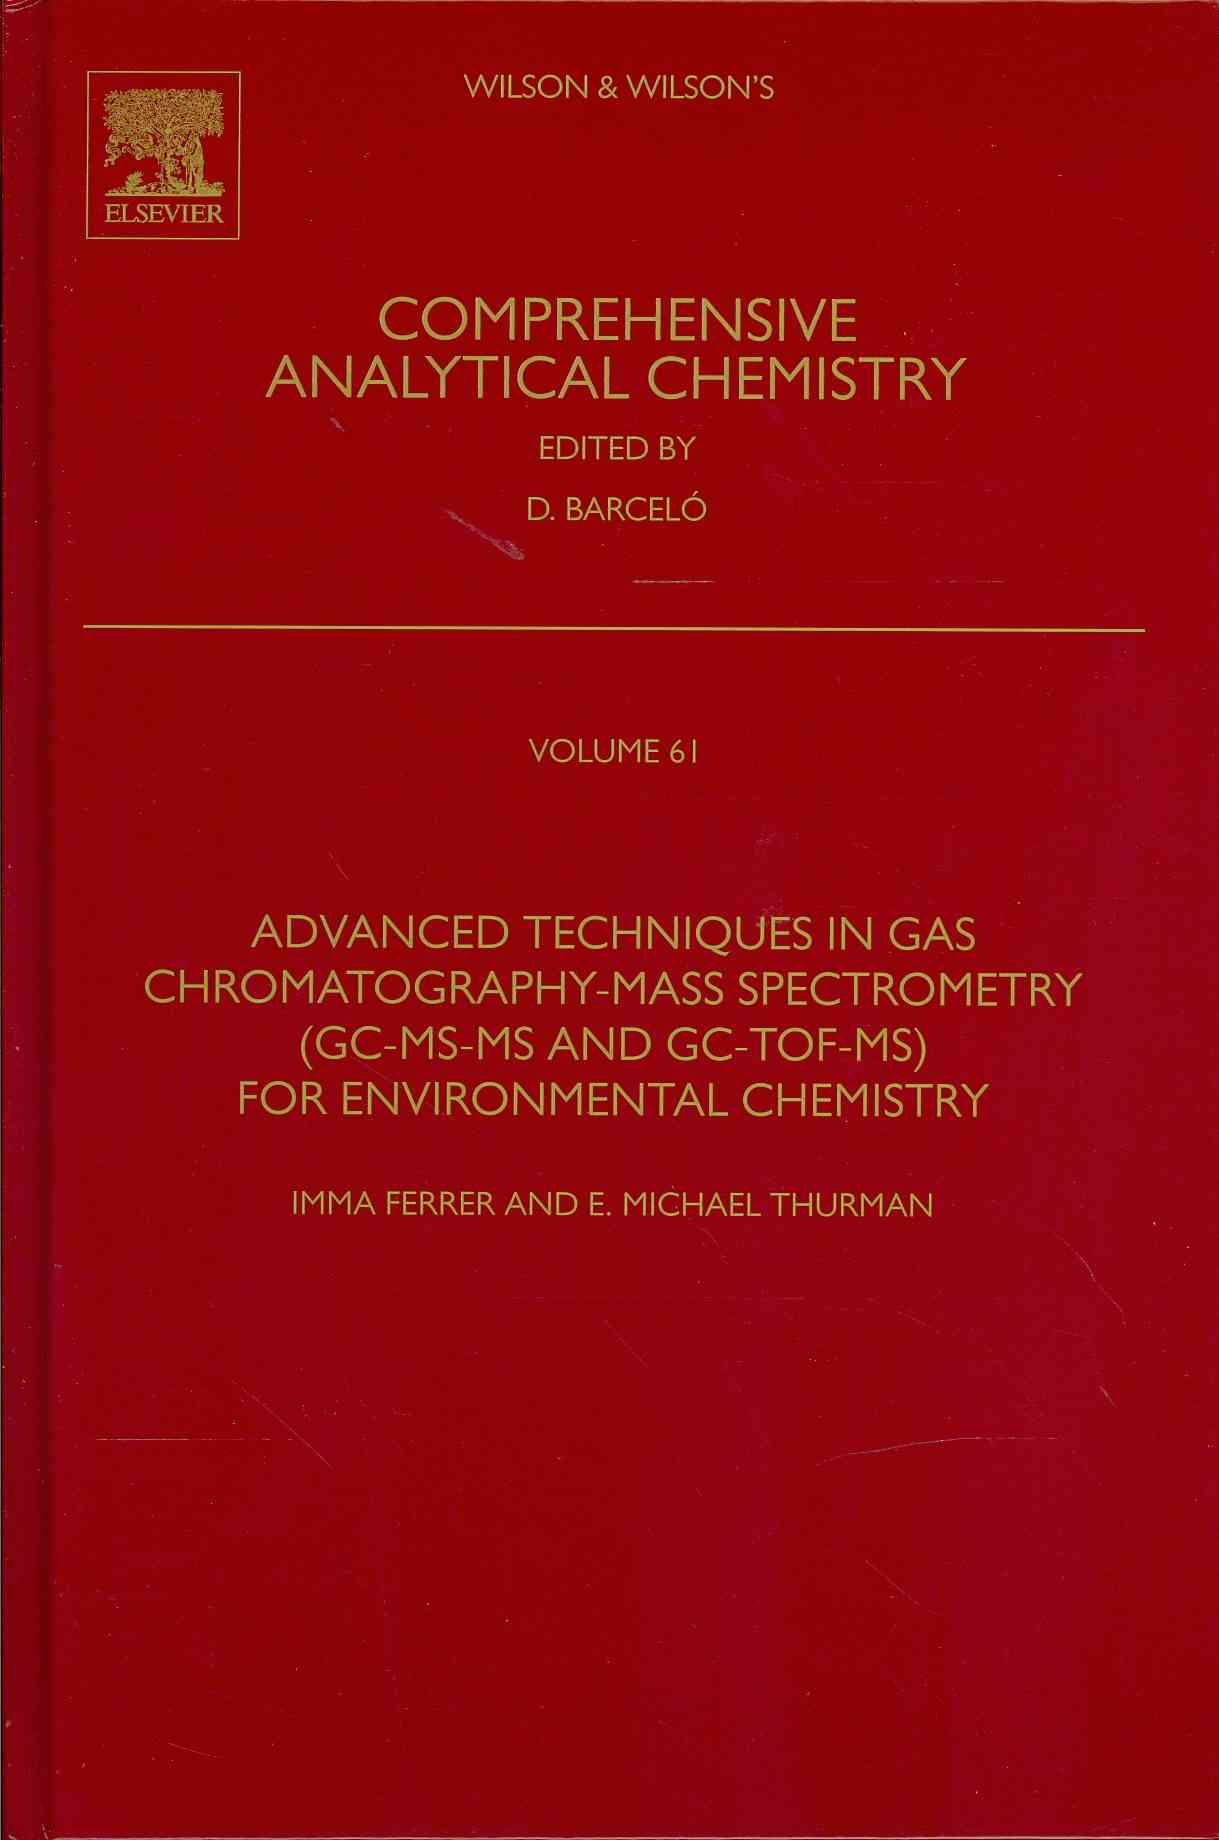 Advanced Techniques in Gas Chromatography-mass Spectrometry (Gc-ms-ms and Gc-tof-ms) for Environmental Chemistry By Ferrer, Imma (EDT)/ Thurman, E. Michael (EDT)